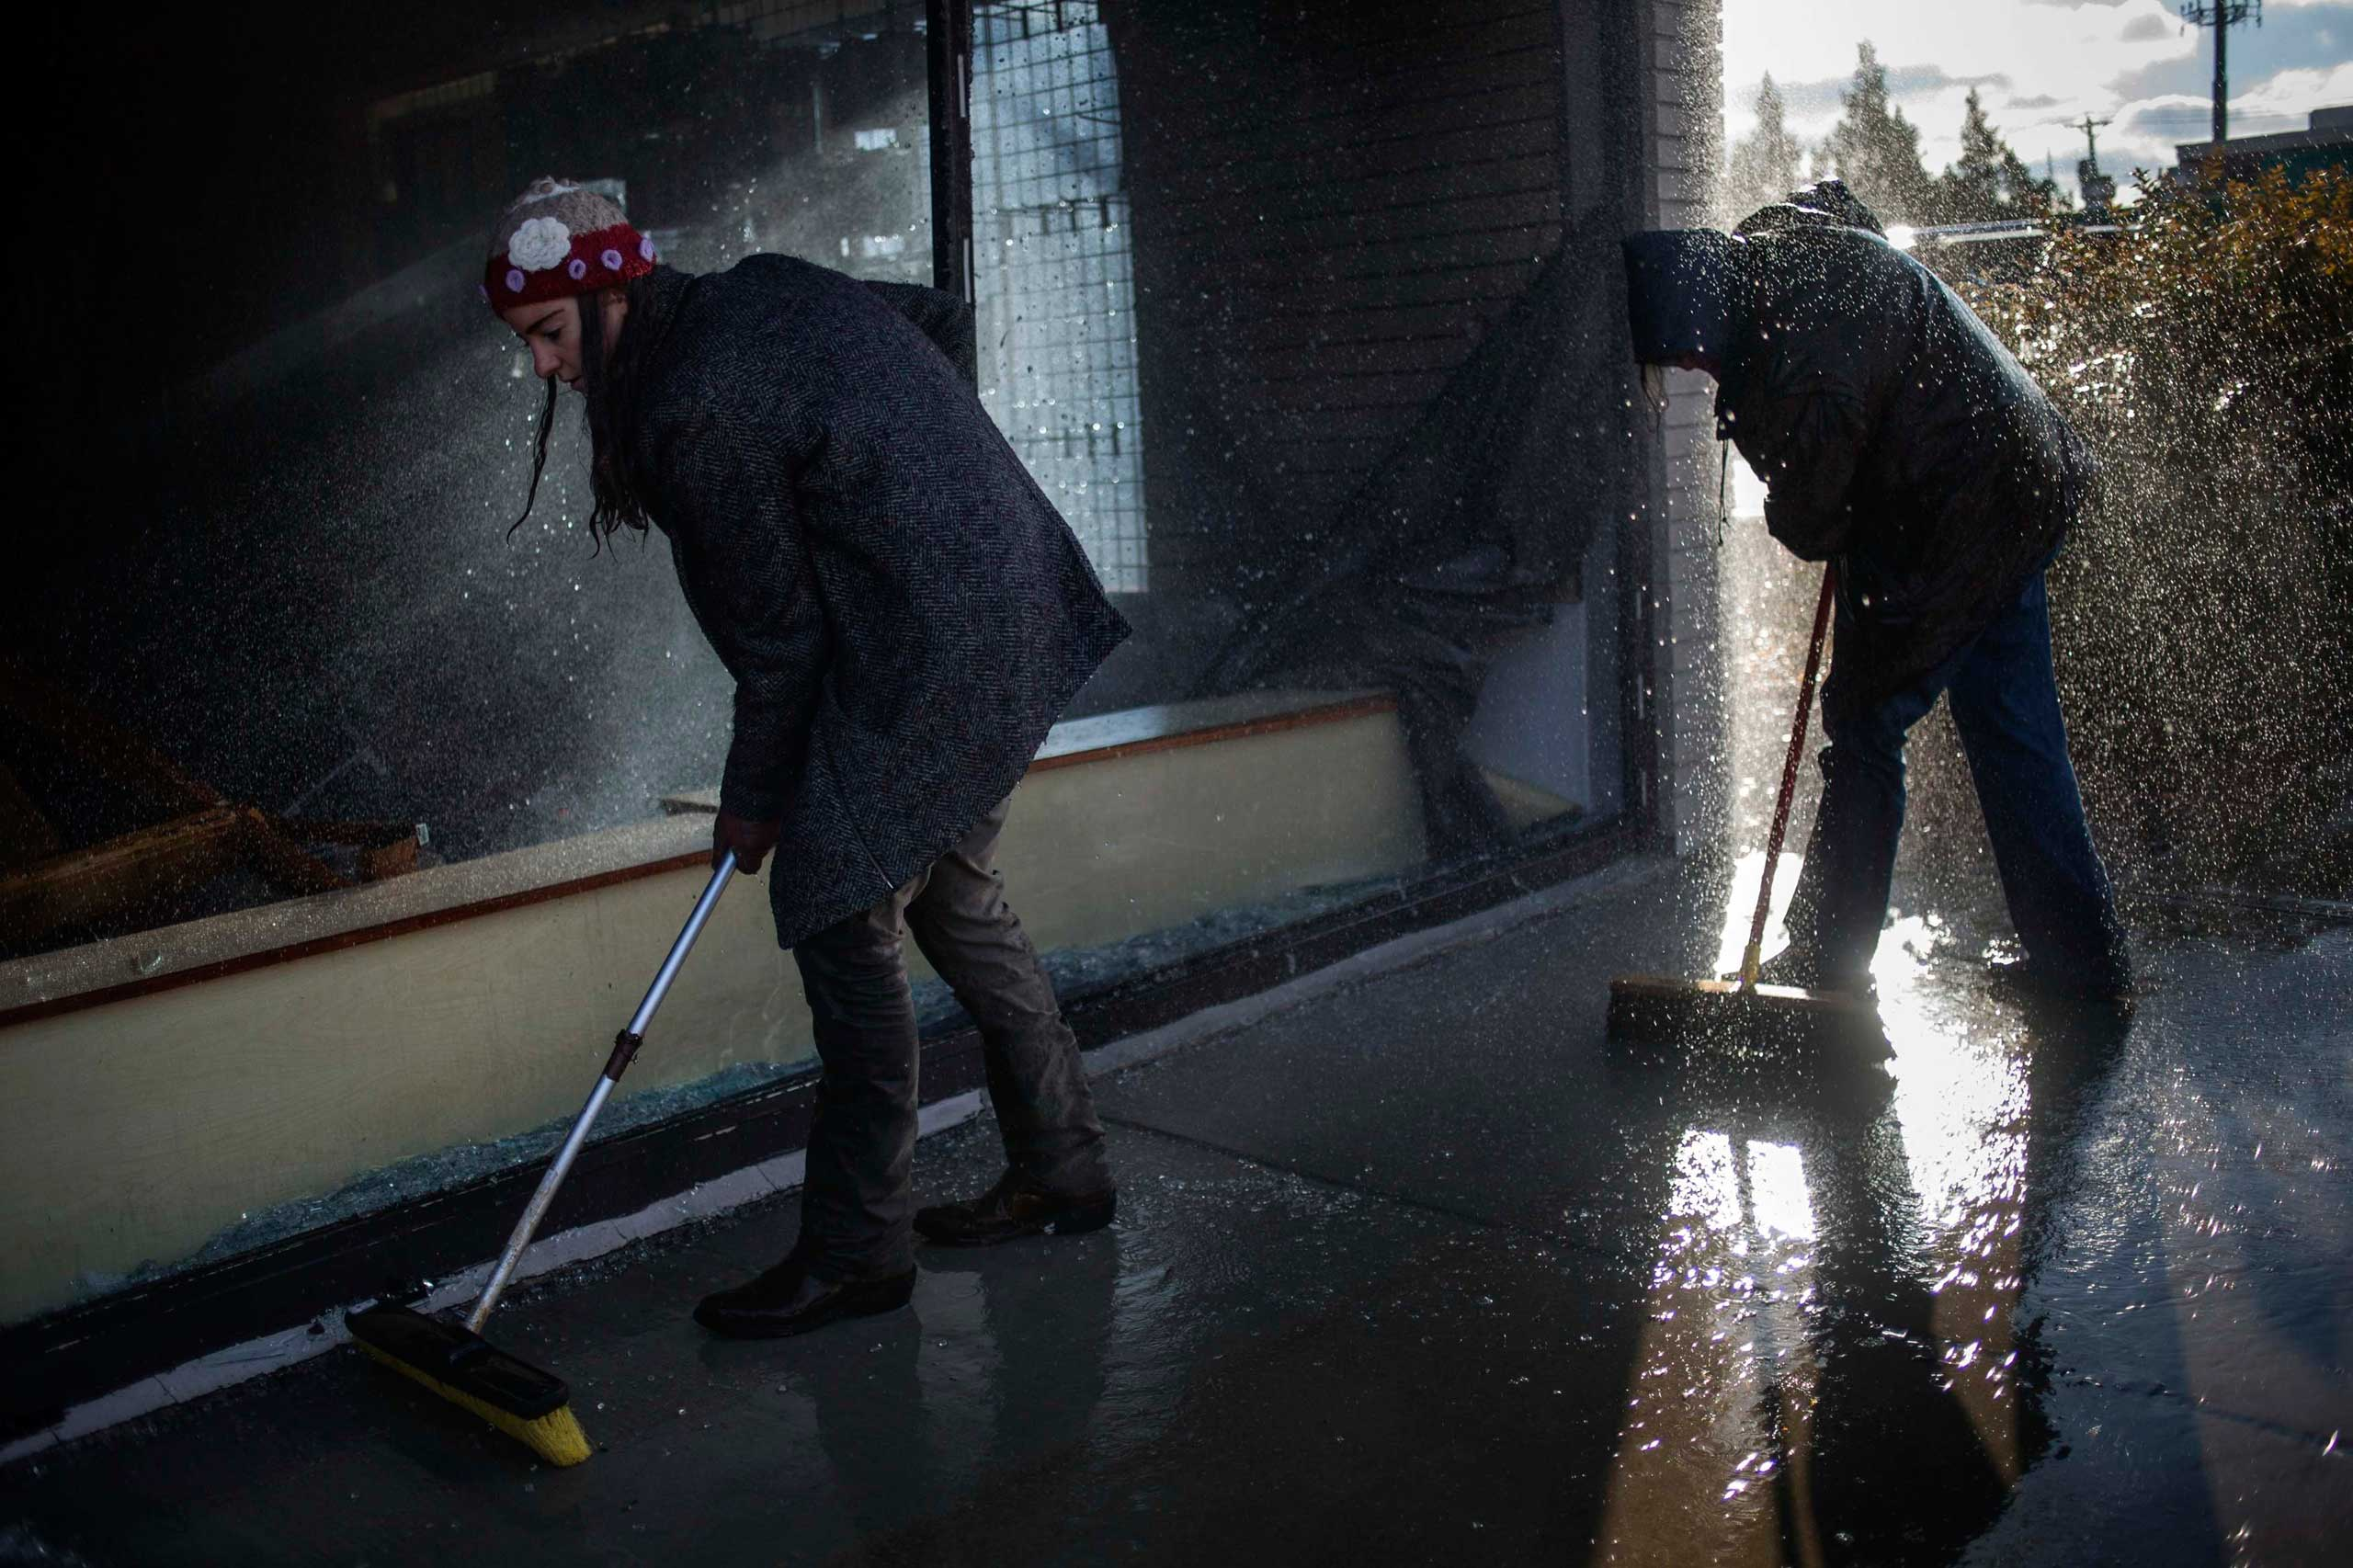 Volunteers, drenched from a smoke alarm, assist in clearing broken glass outside a burned and looted shop in Ferguson, Mo. on Nov. 25, 2014.